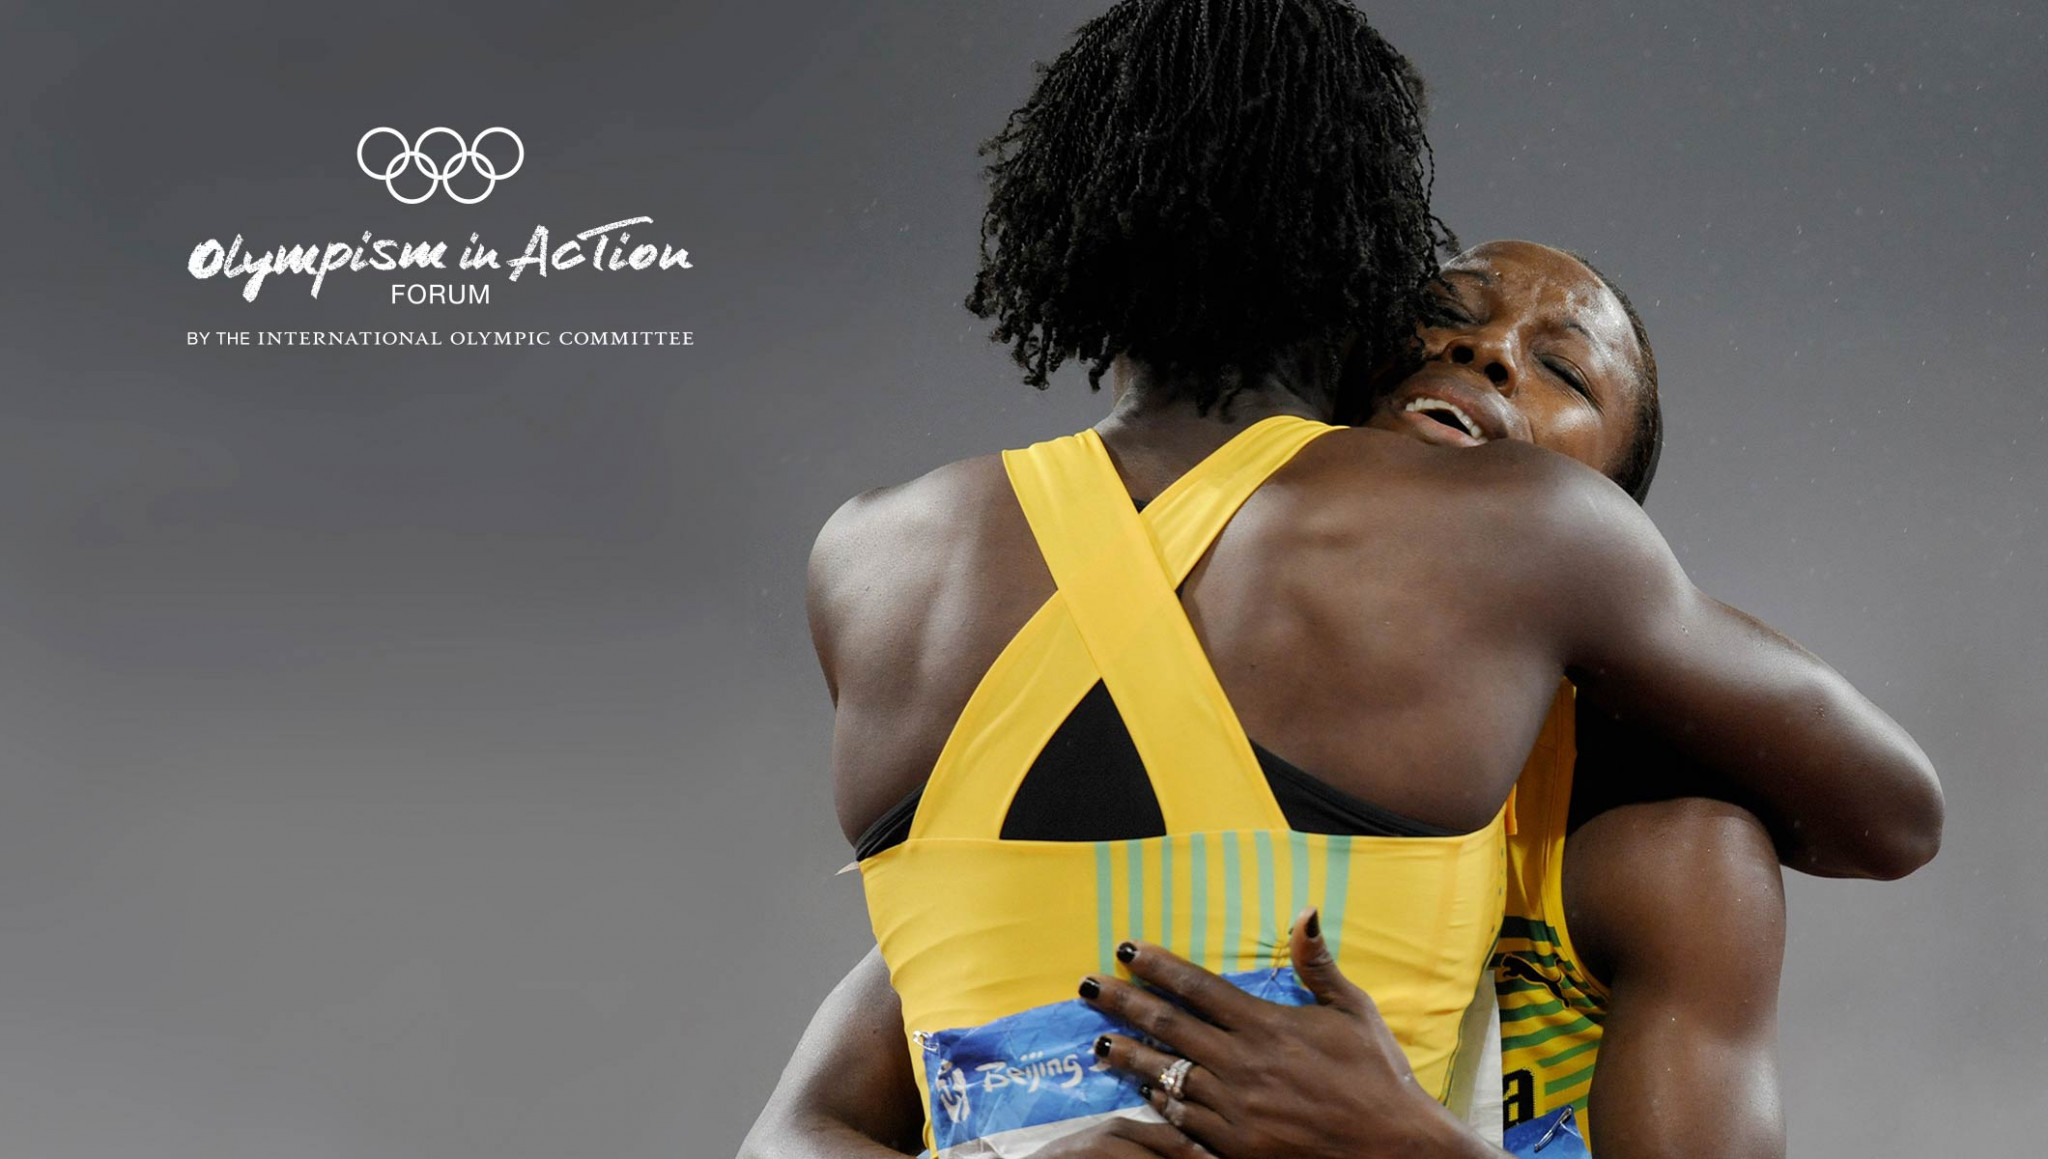 Women in sport, doping and perspectives on hosting Olympics to feature at Olympism in Action Forum